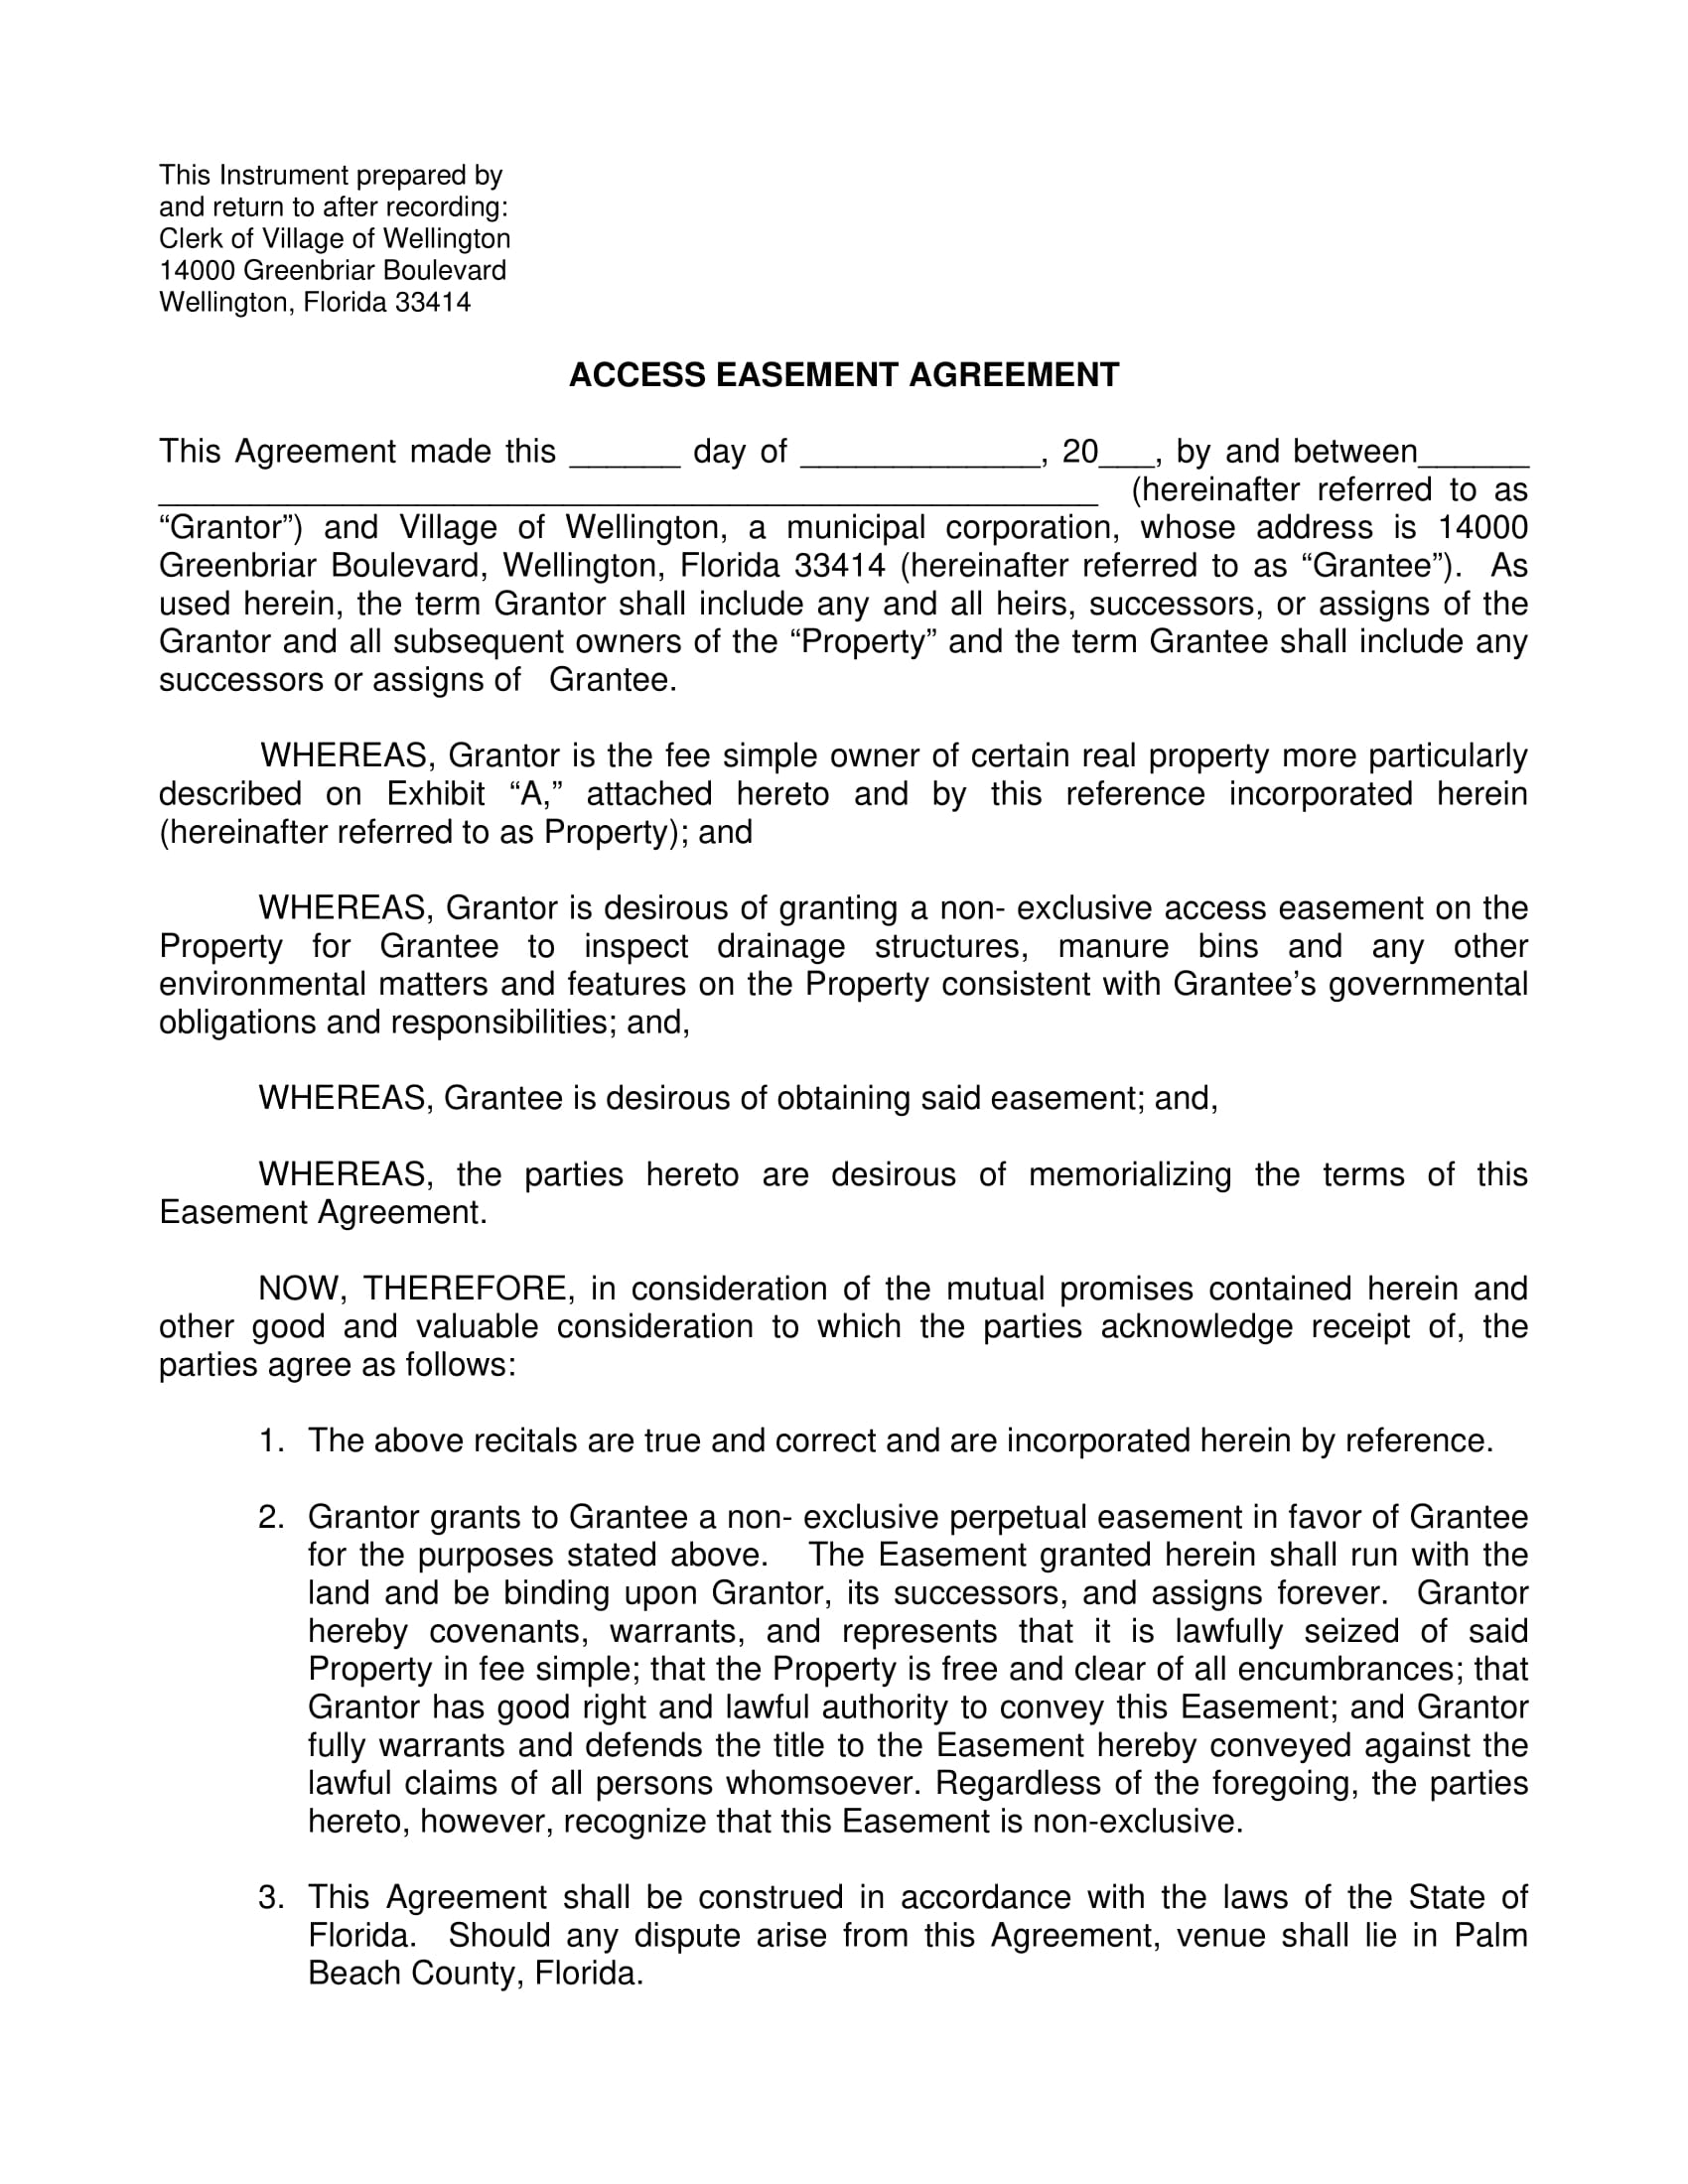 access easement agreement contract form 1